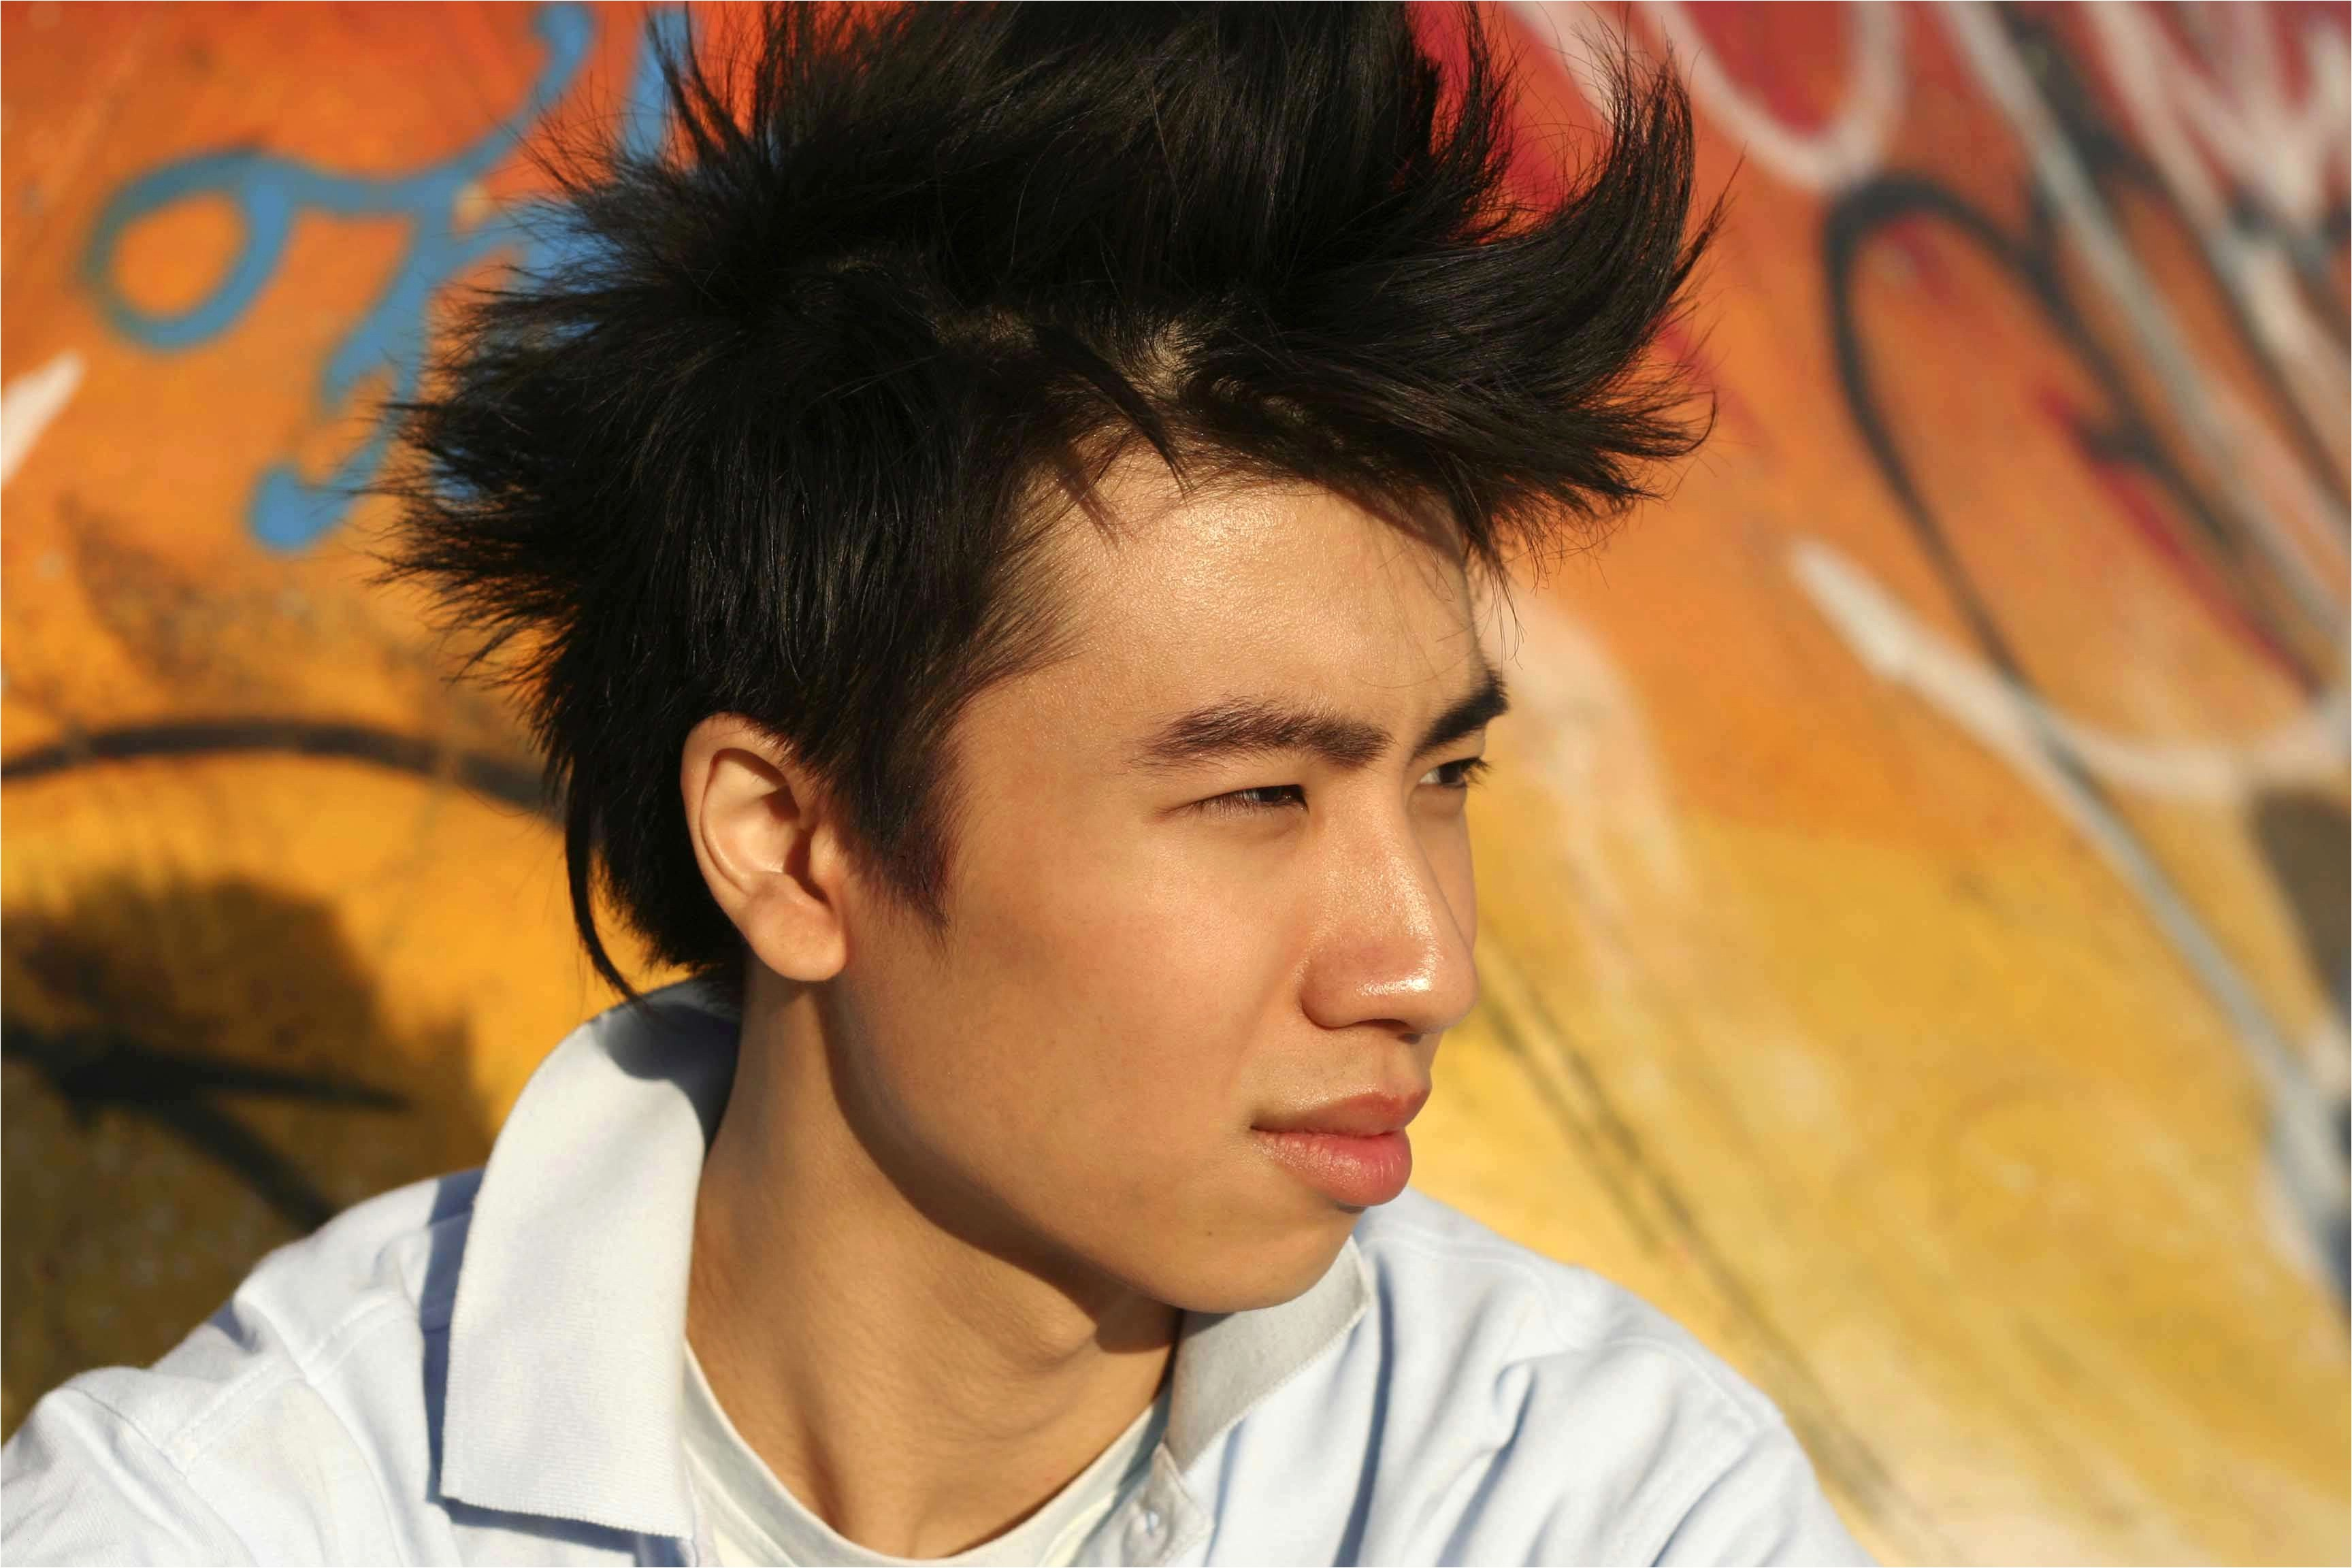 New Hairstyle App Luxury Hairstyles for Men Luxury Haircuts 0d Awesome Current Mens Hairstyles